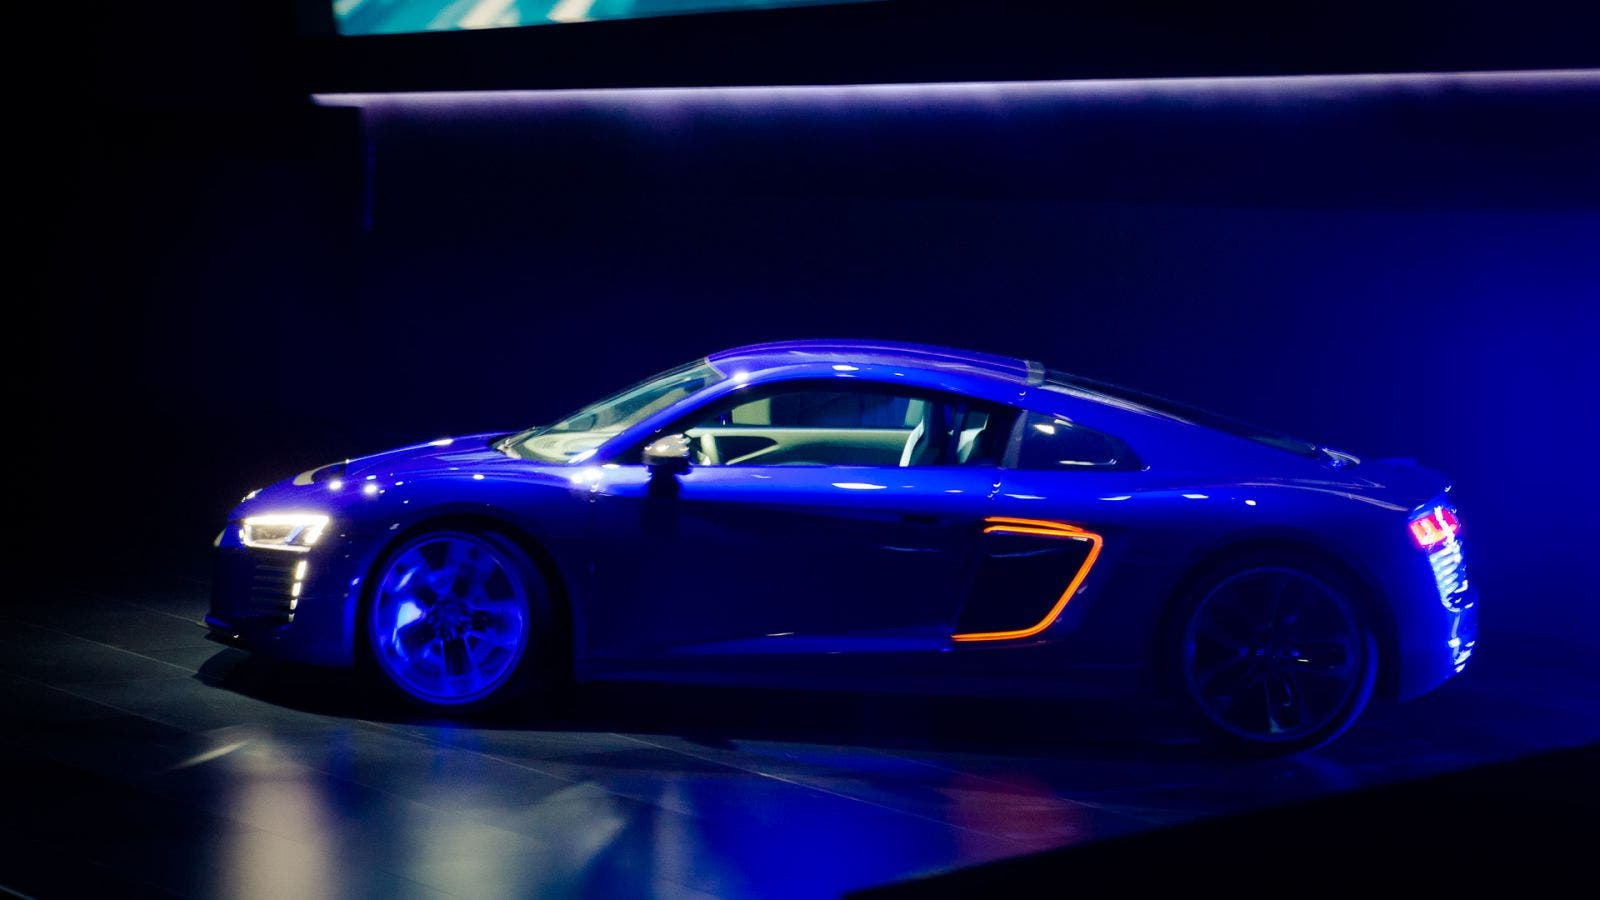 2015 Audi R8 e-tron piloted driving